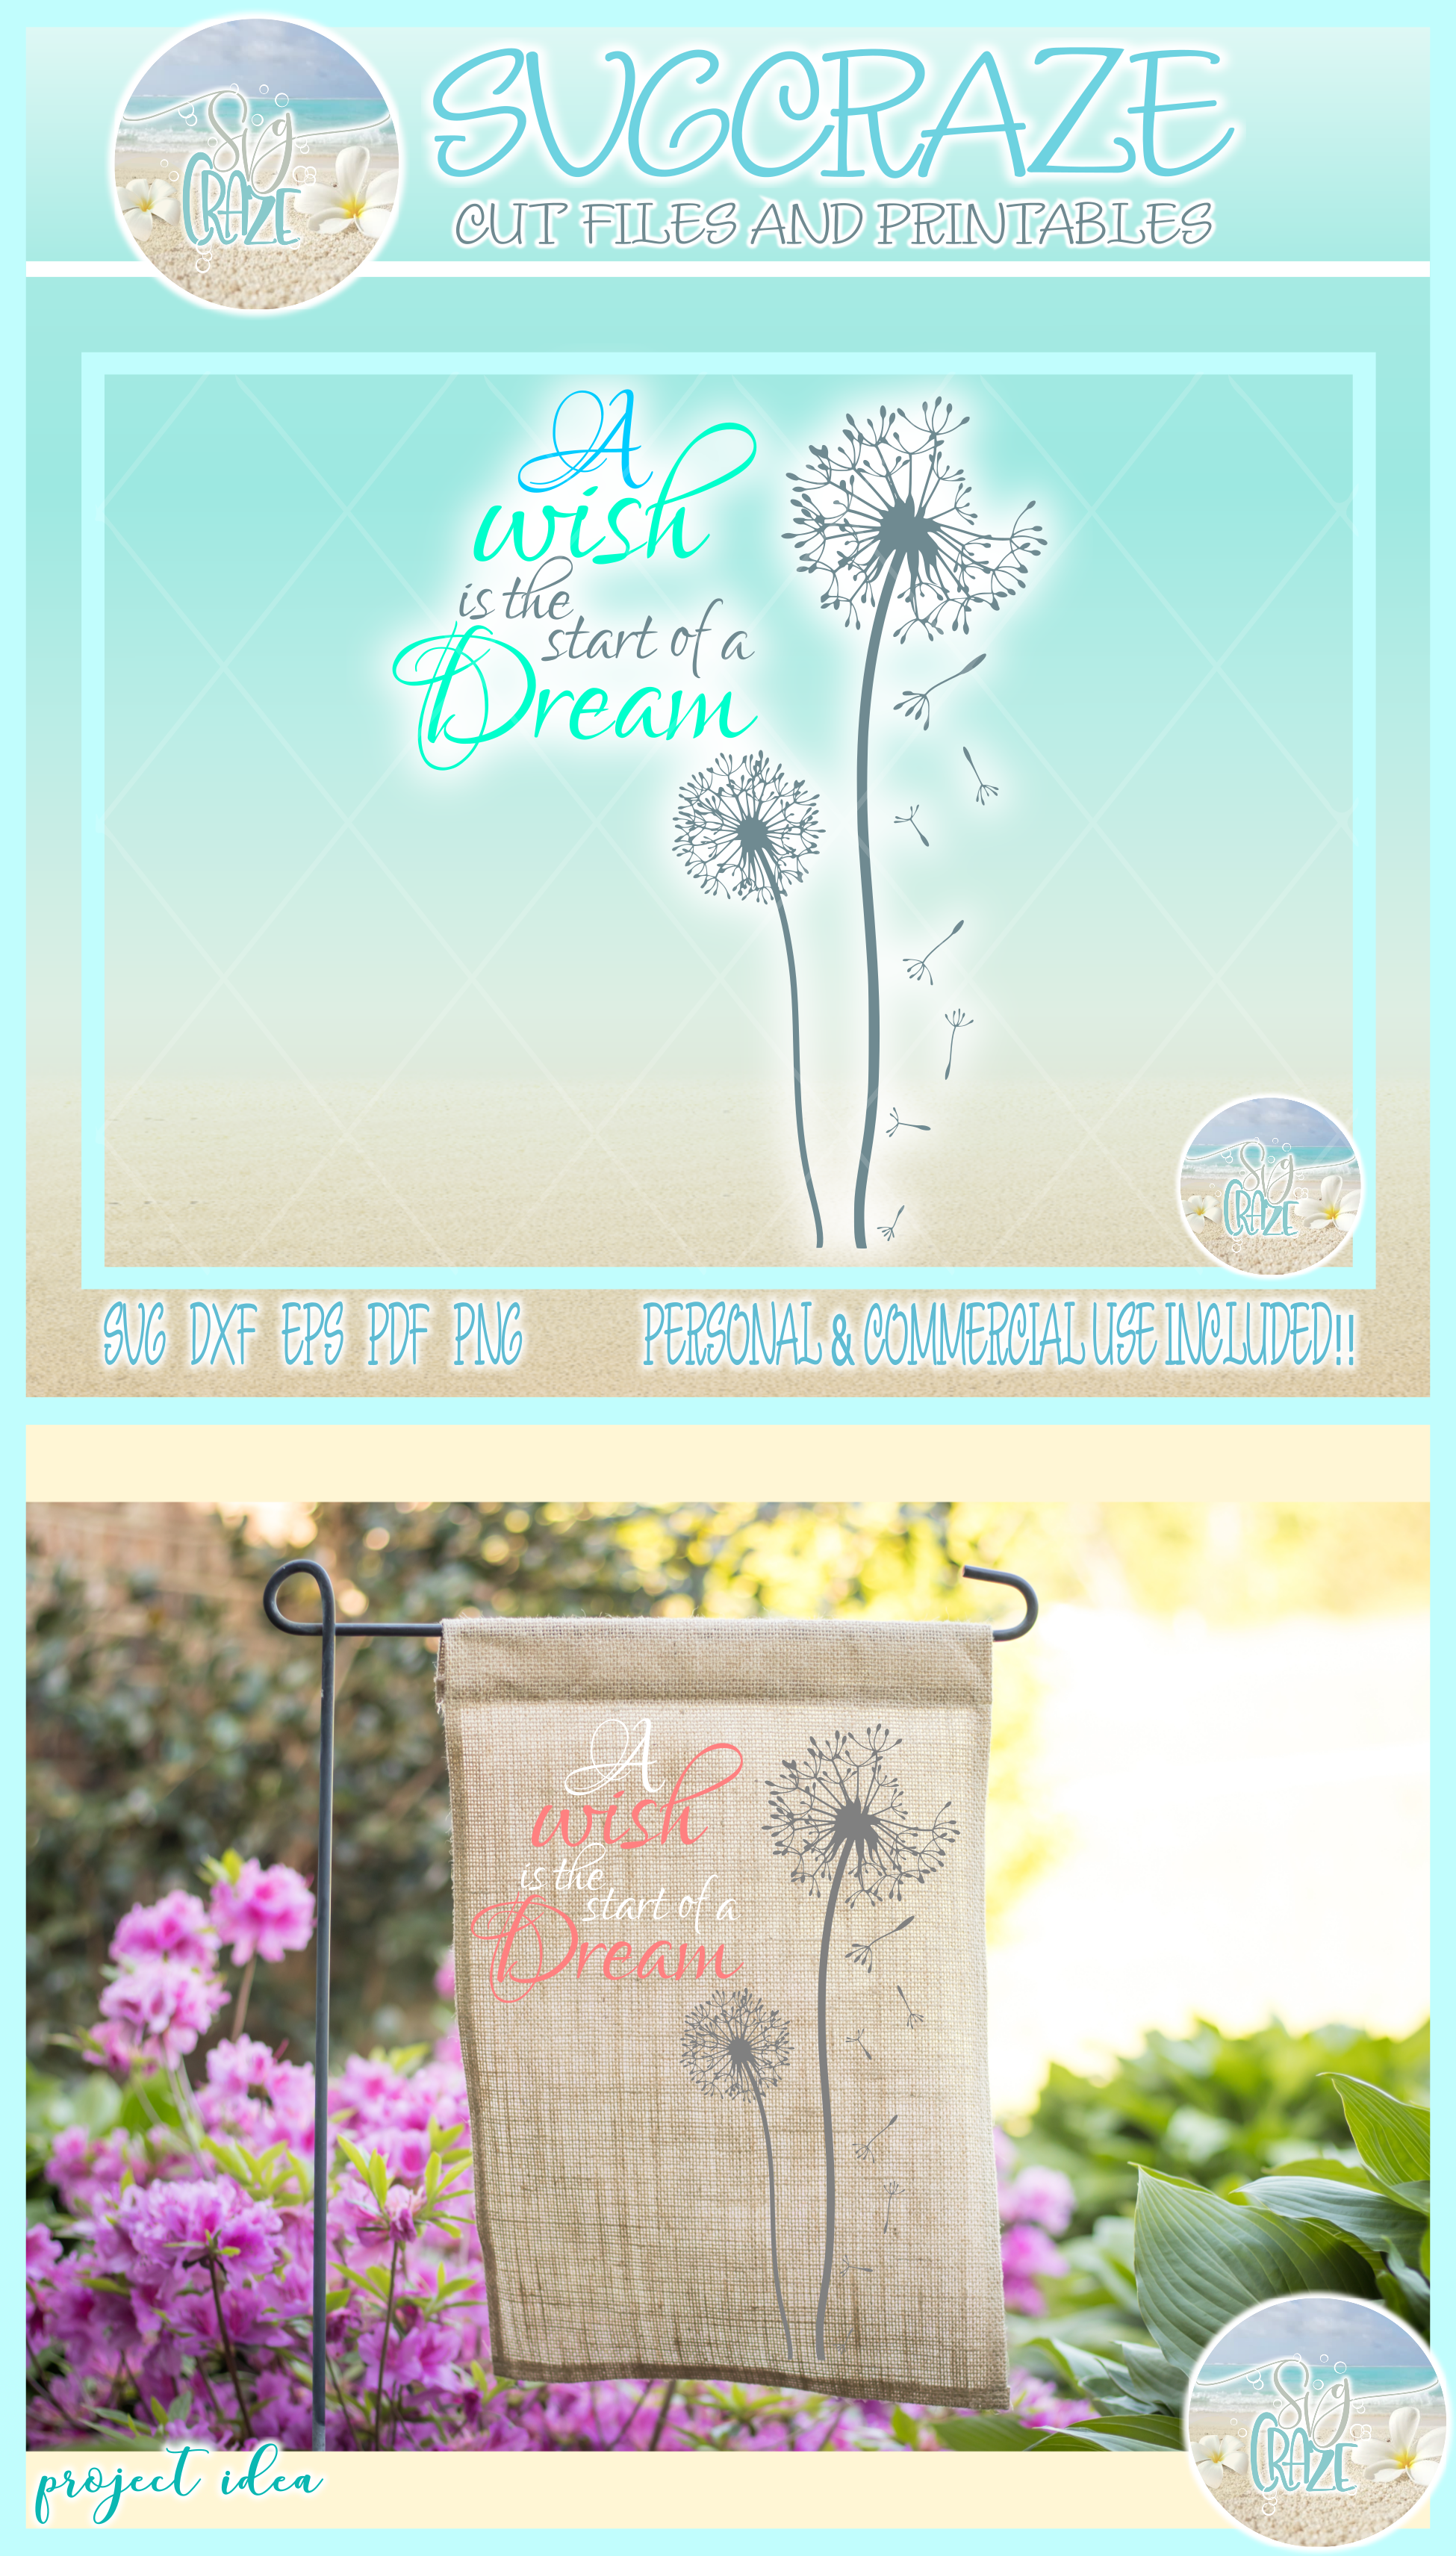 A Wish Is The Start Of A Dream Quote Dandelion SVG example image 4